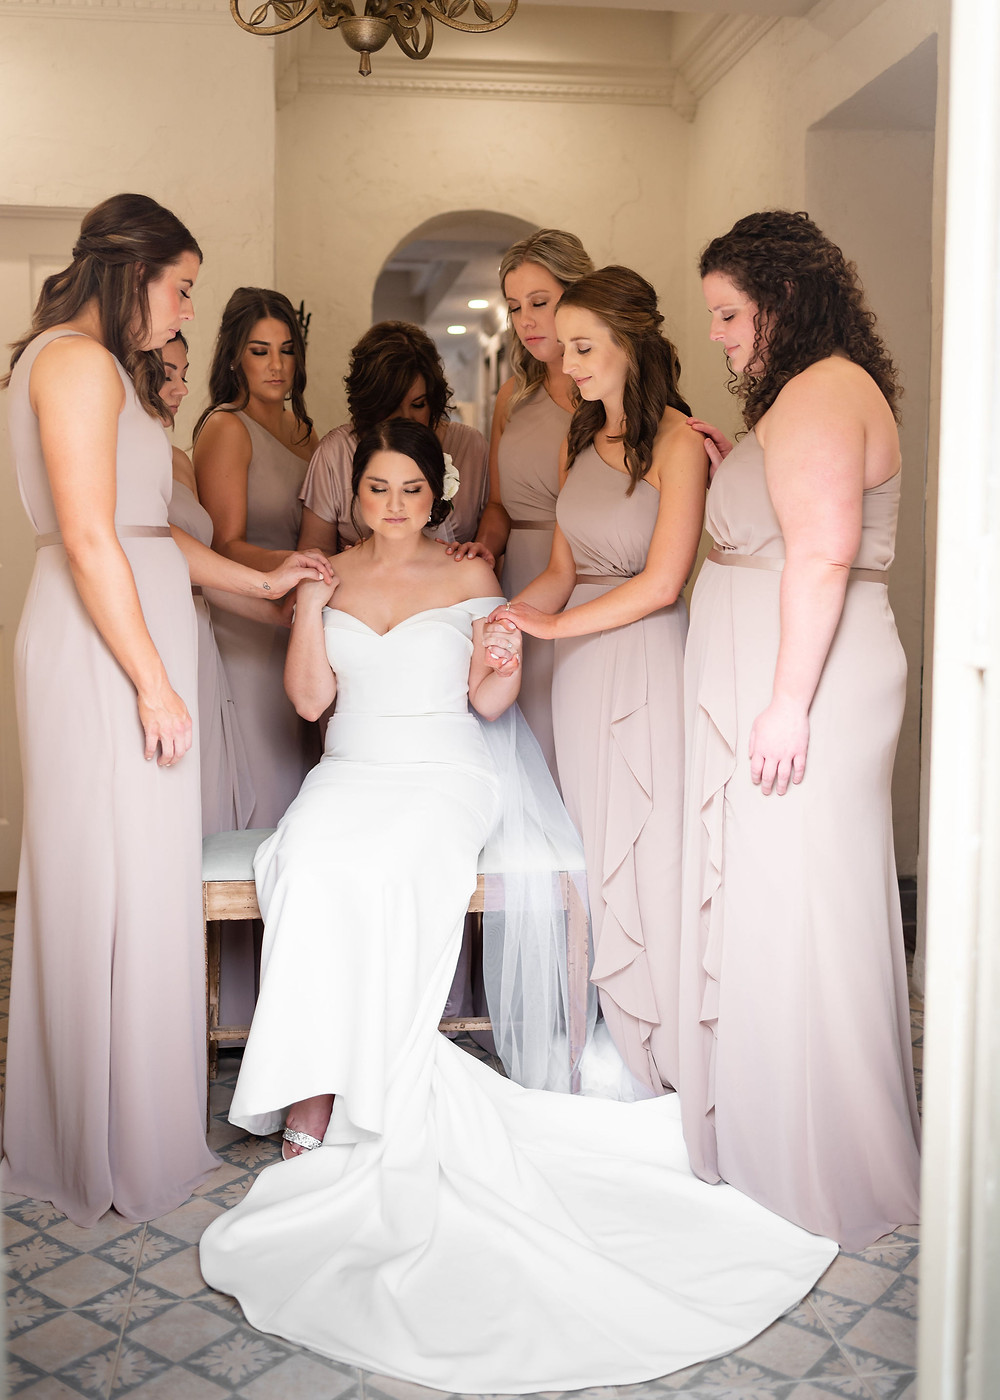 bridesmaids praying over bride before wedding at villa antonia